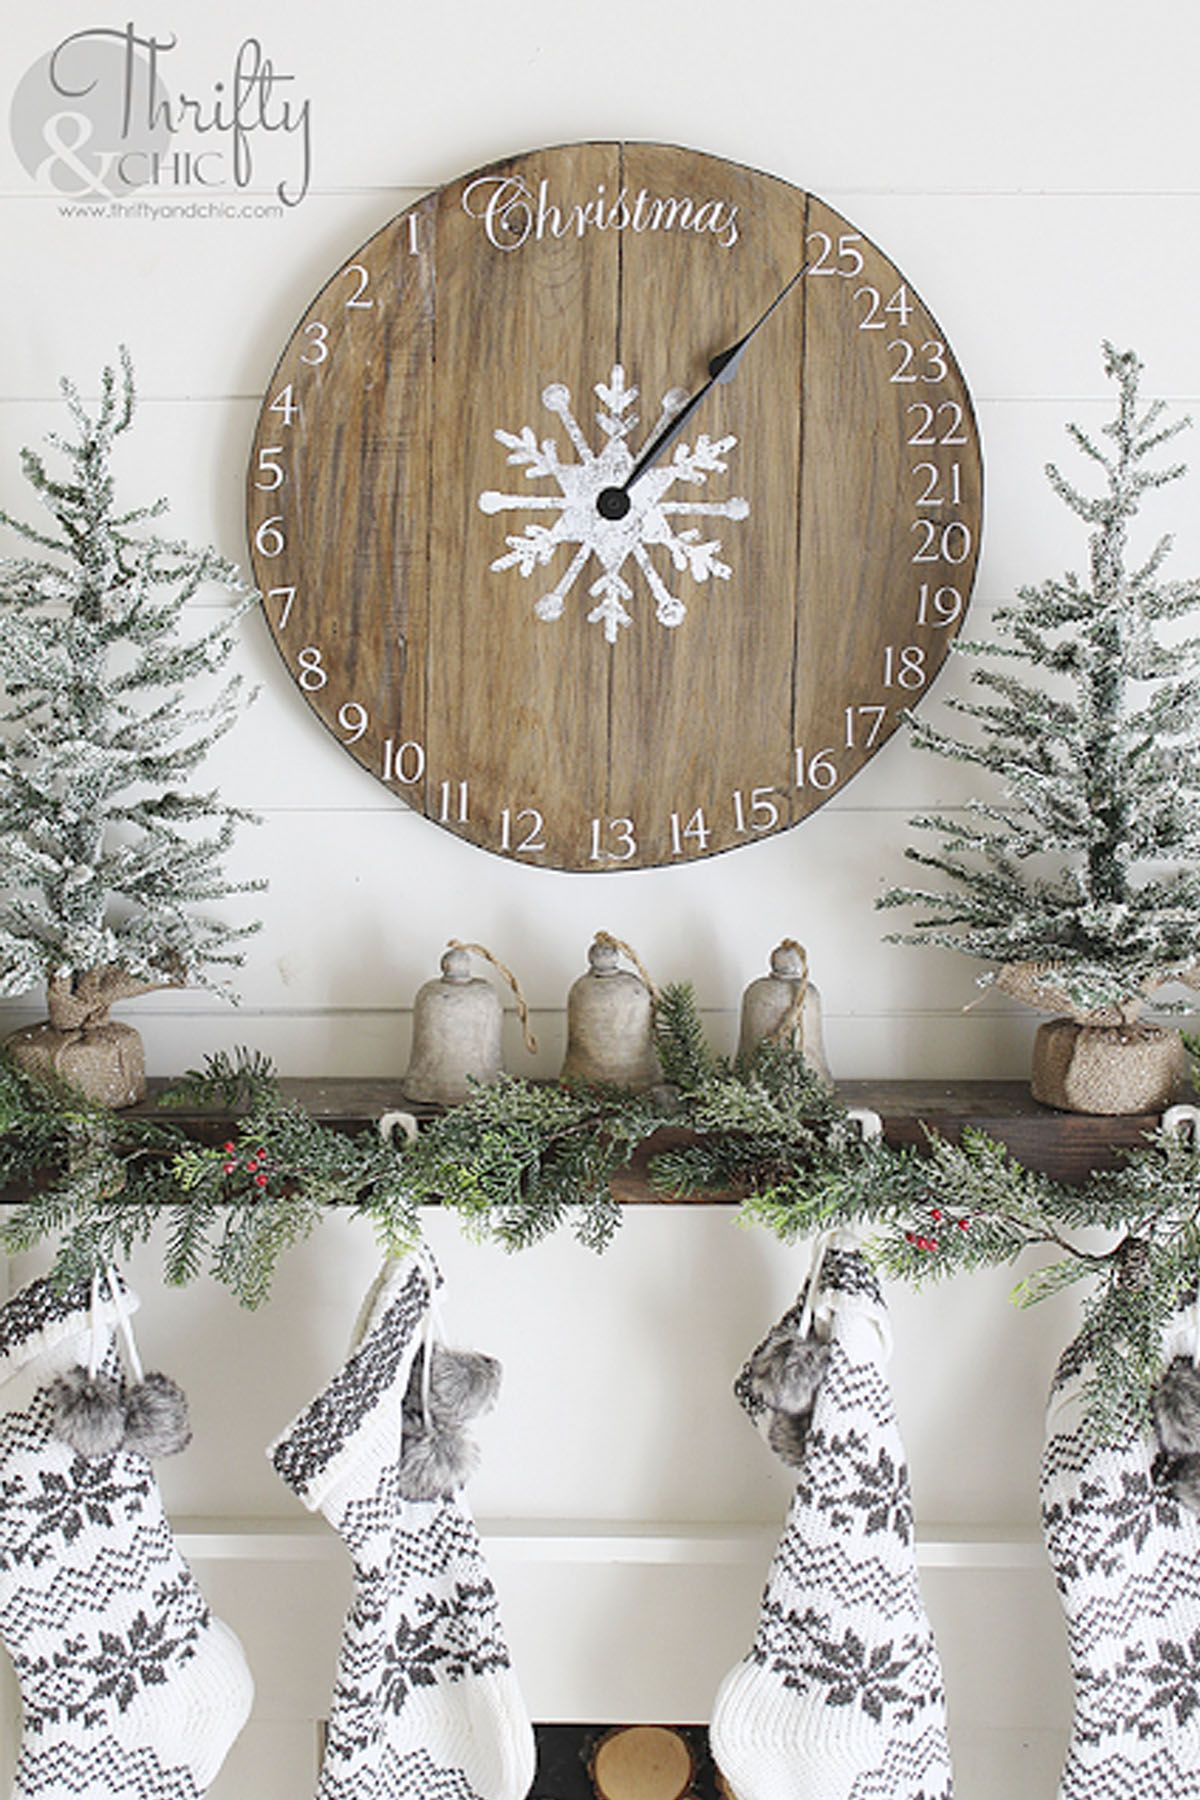 55 Easy Diy Christmas Decorations Homemade Ideas For Holiday